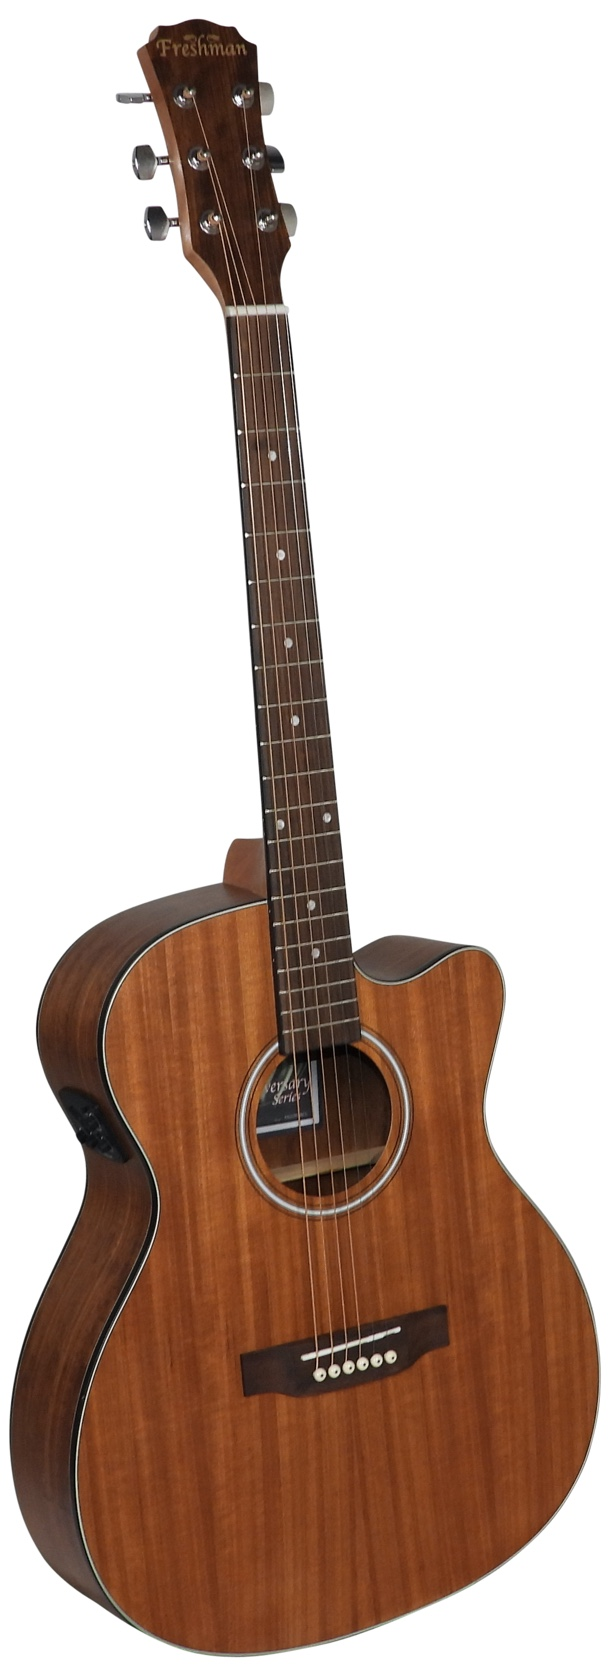 NEW Freshman Limited Edition FALTDWALOC All Walnut Electro-Acoustic Cutaway - Varsity Music Shop